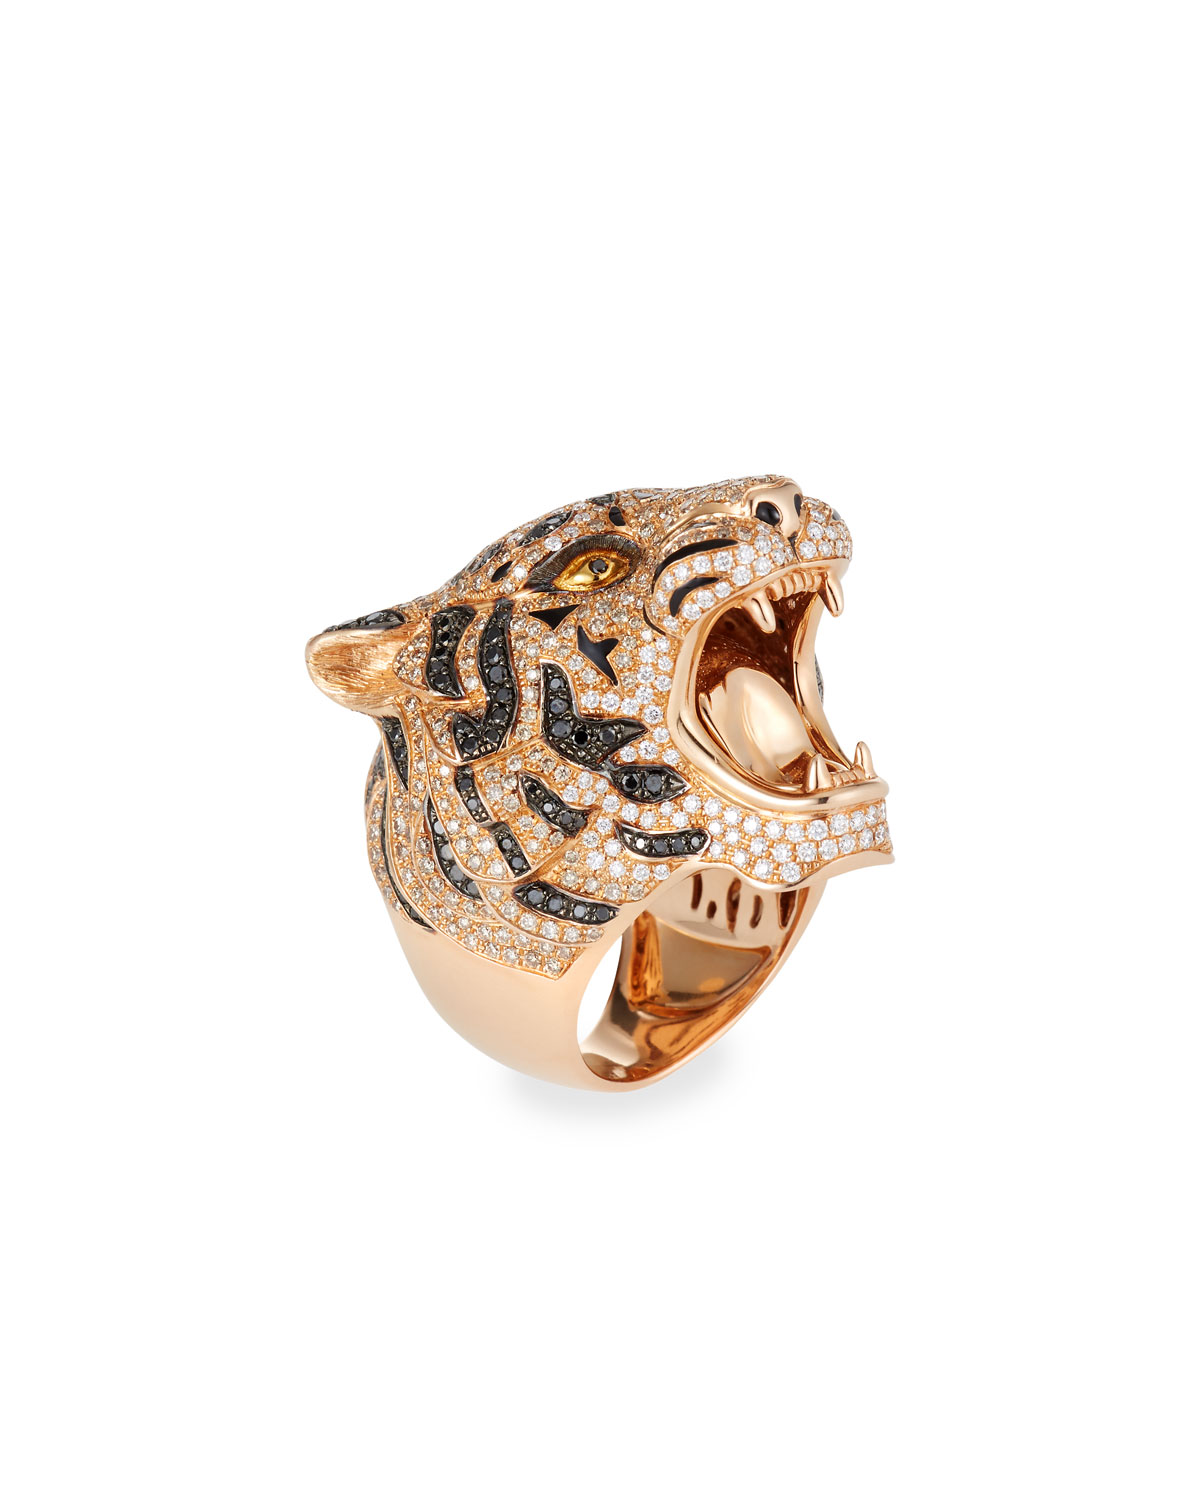 18K ROSE GOLD DIAMOND PAVE TIGER RING, SIZE 7